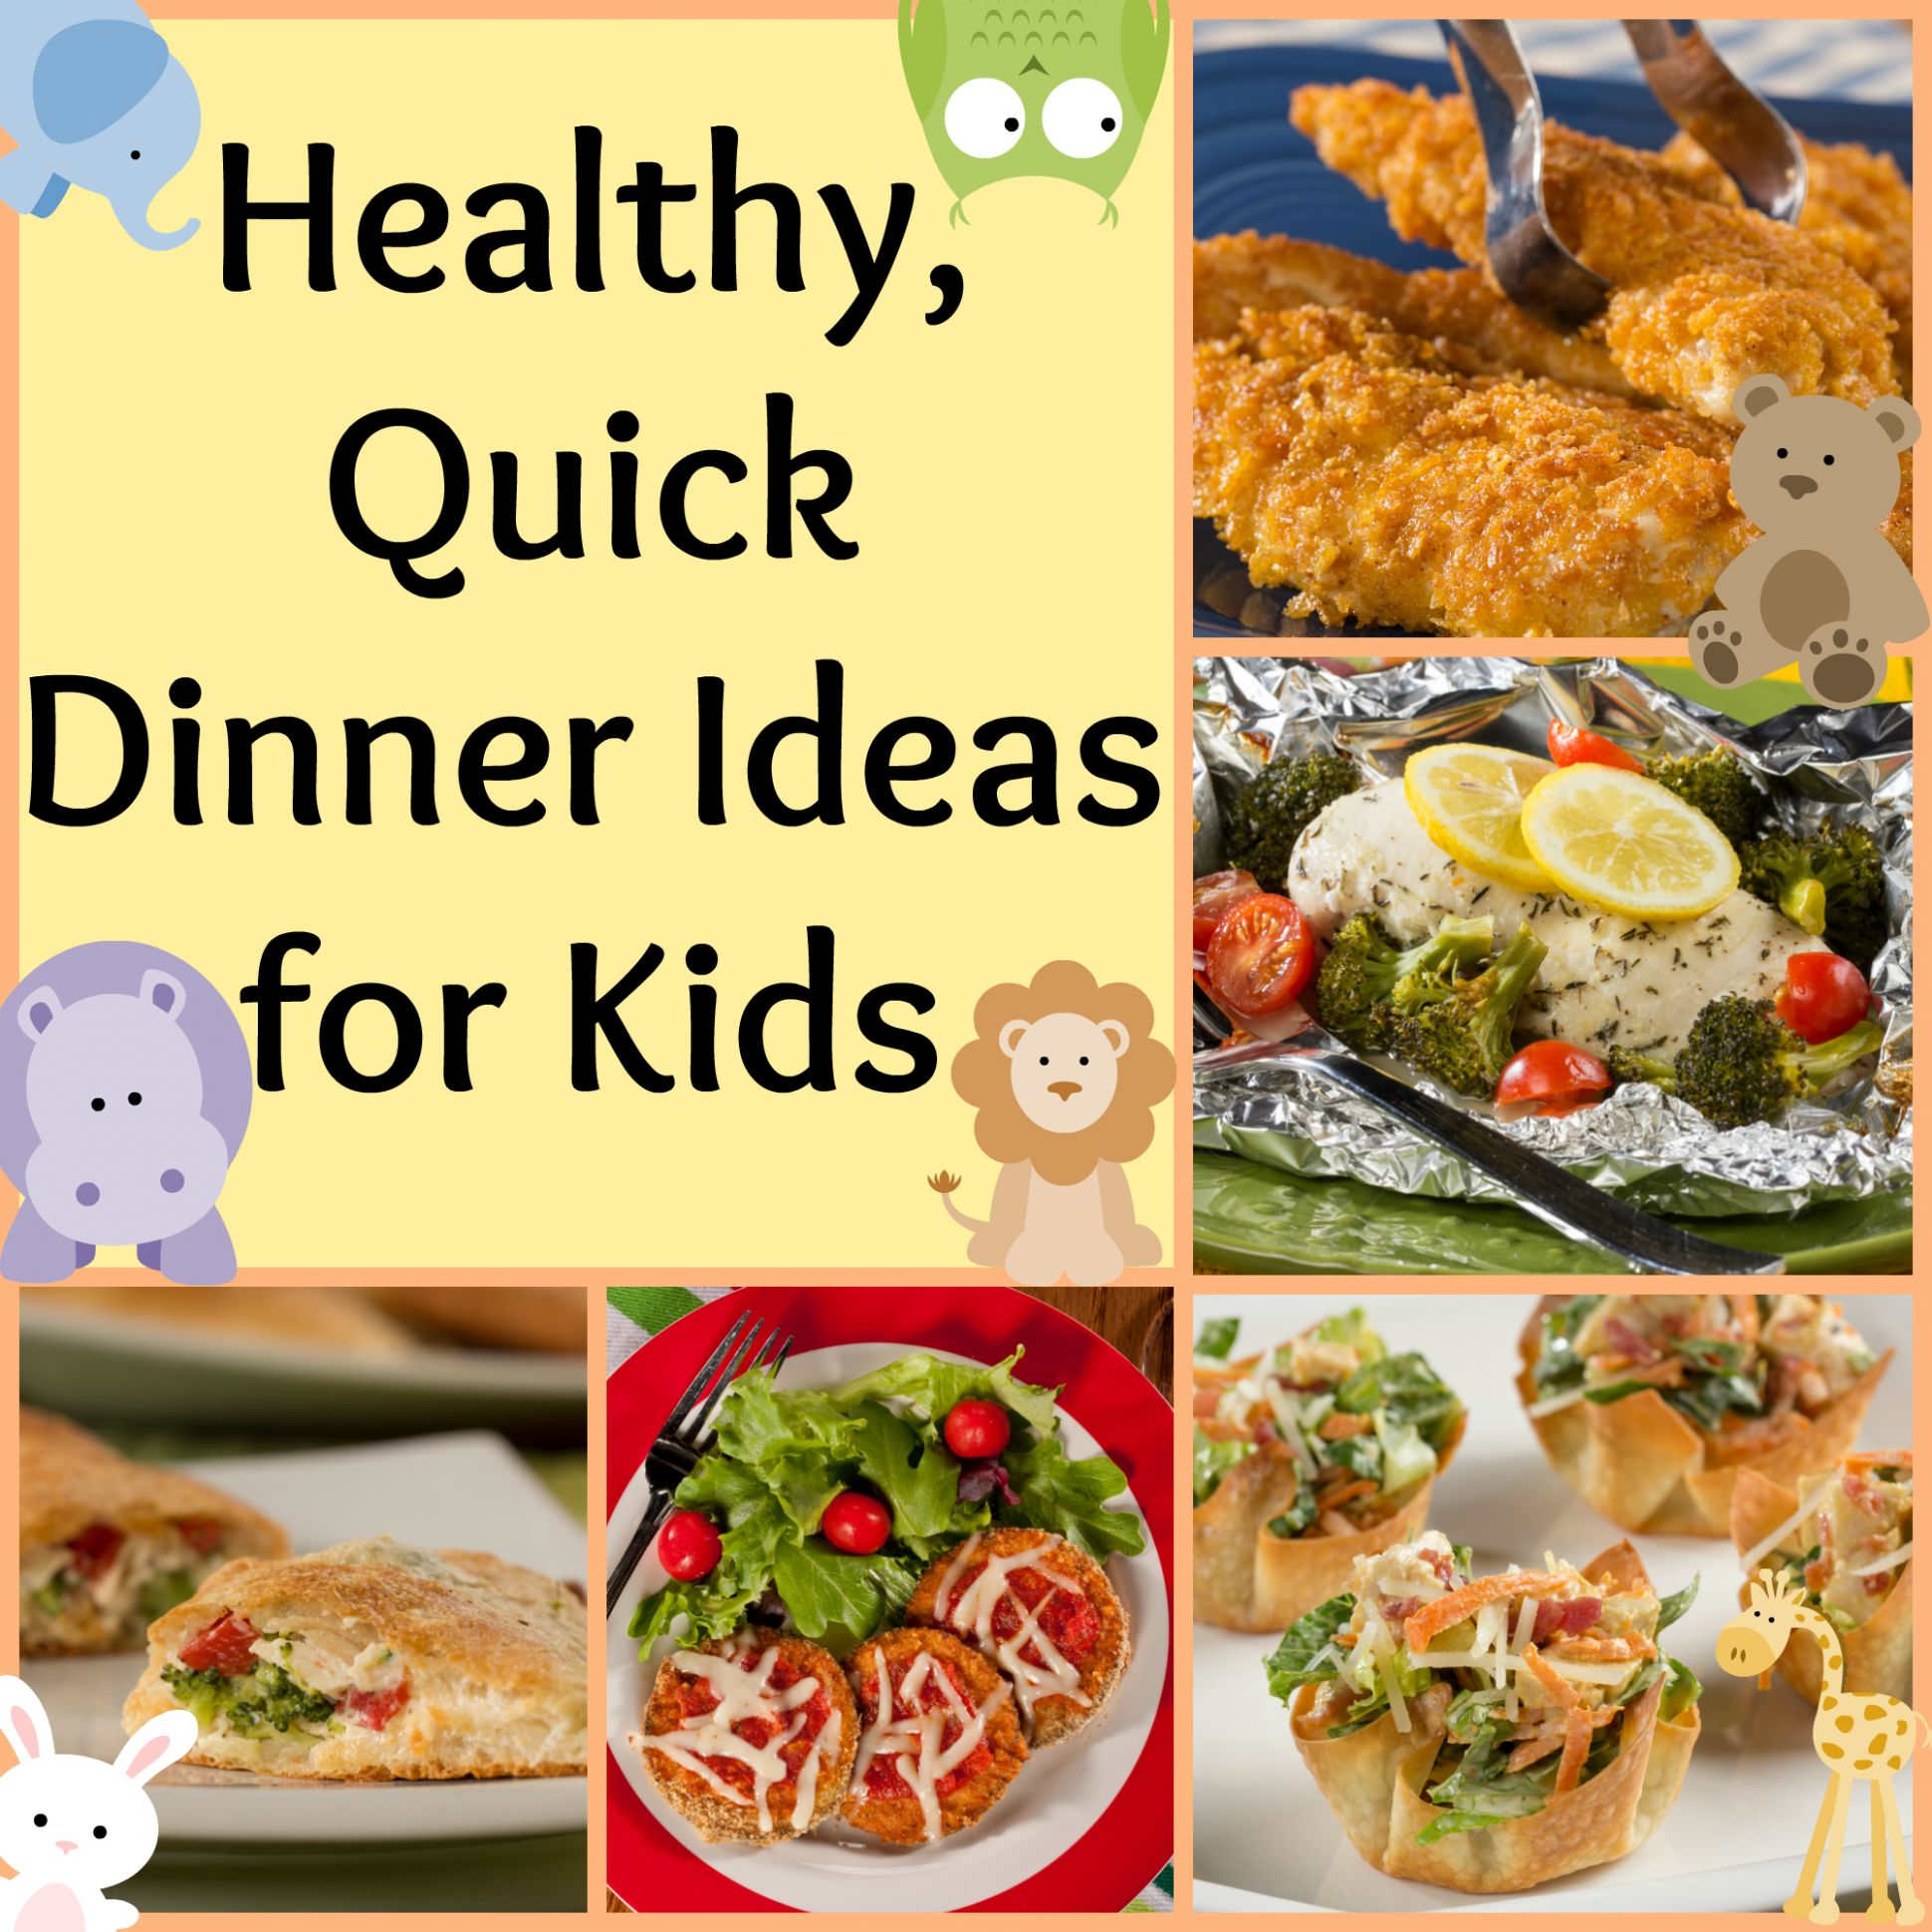 Healthy, Quick Dinner Ideas for Kids - Mr. Food's Blog